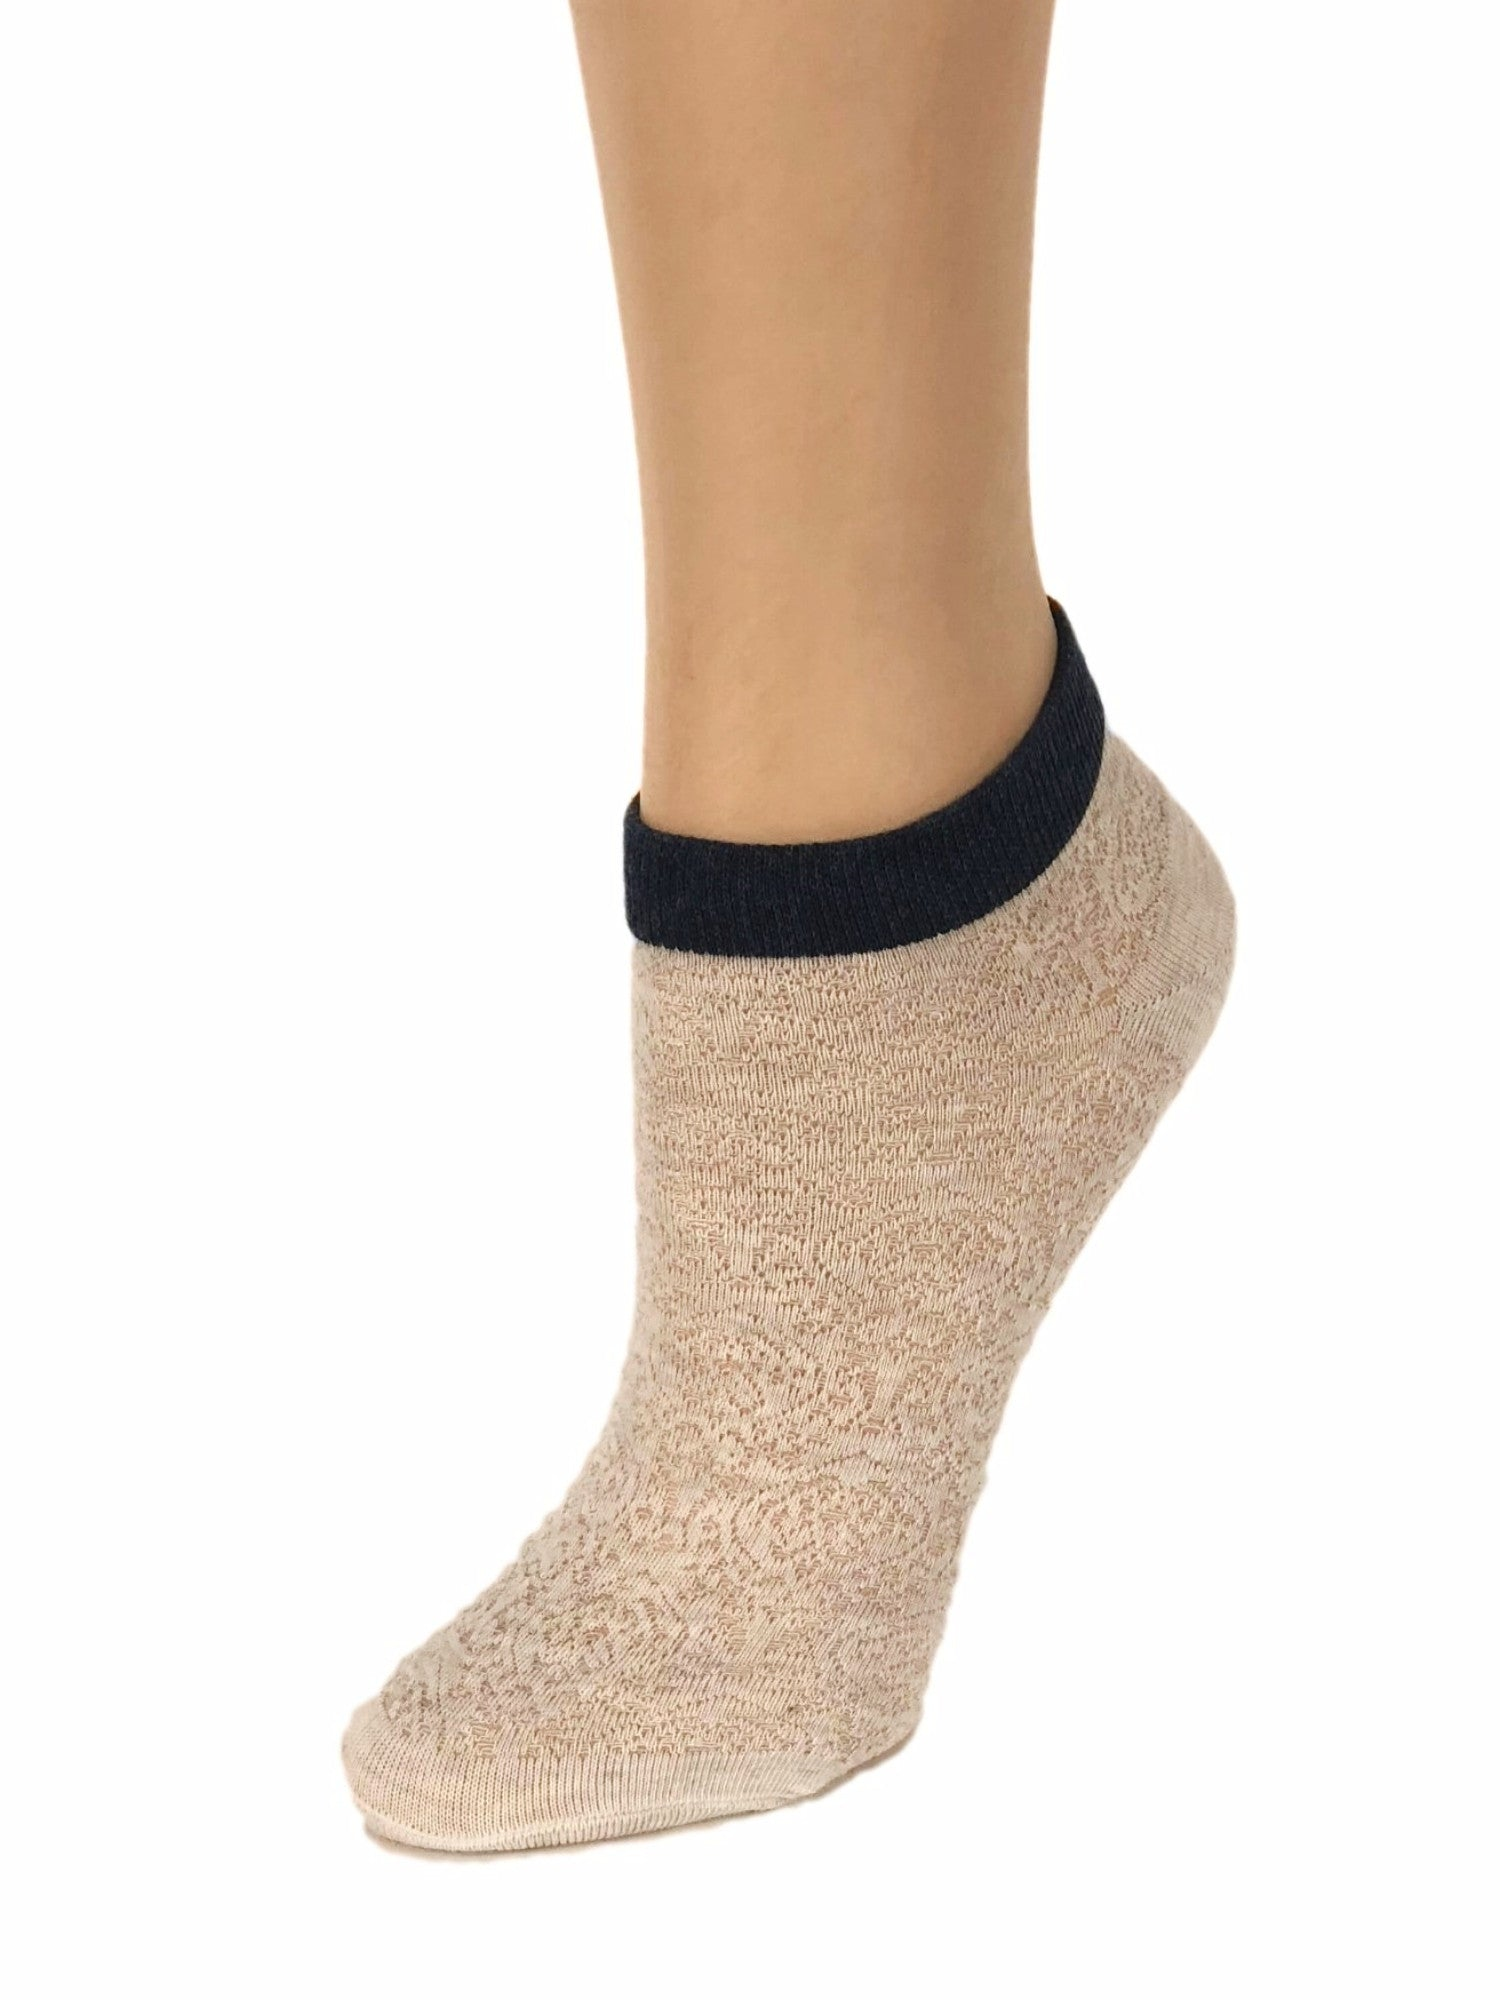 Elegant Black-Stripped Ankle Sheer Socks - Global Trendz Fashion®